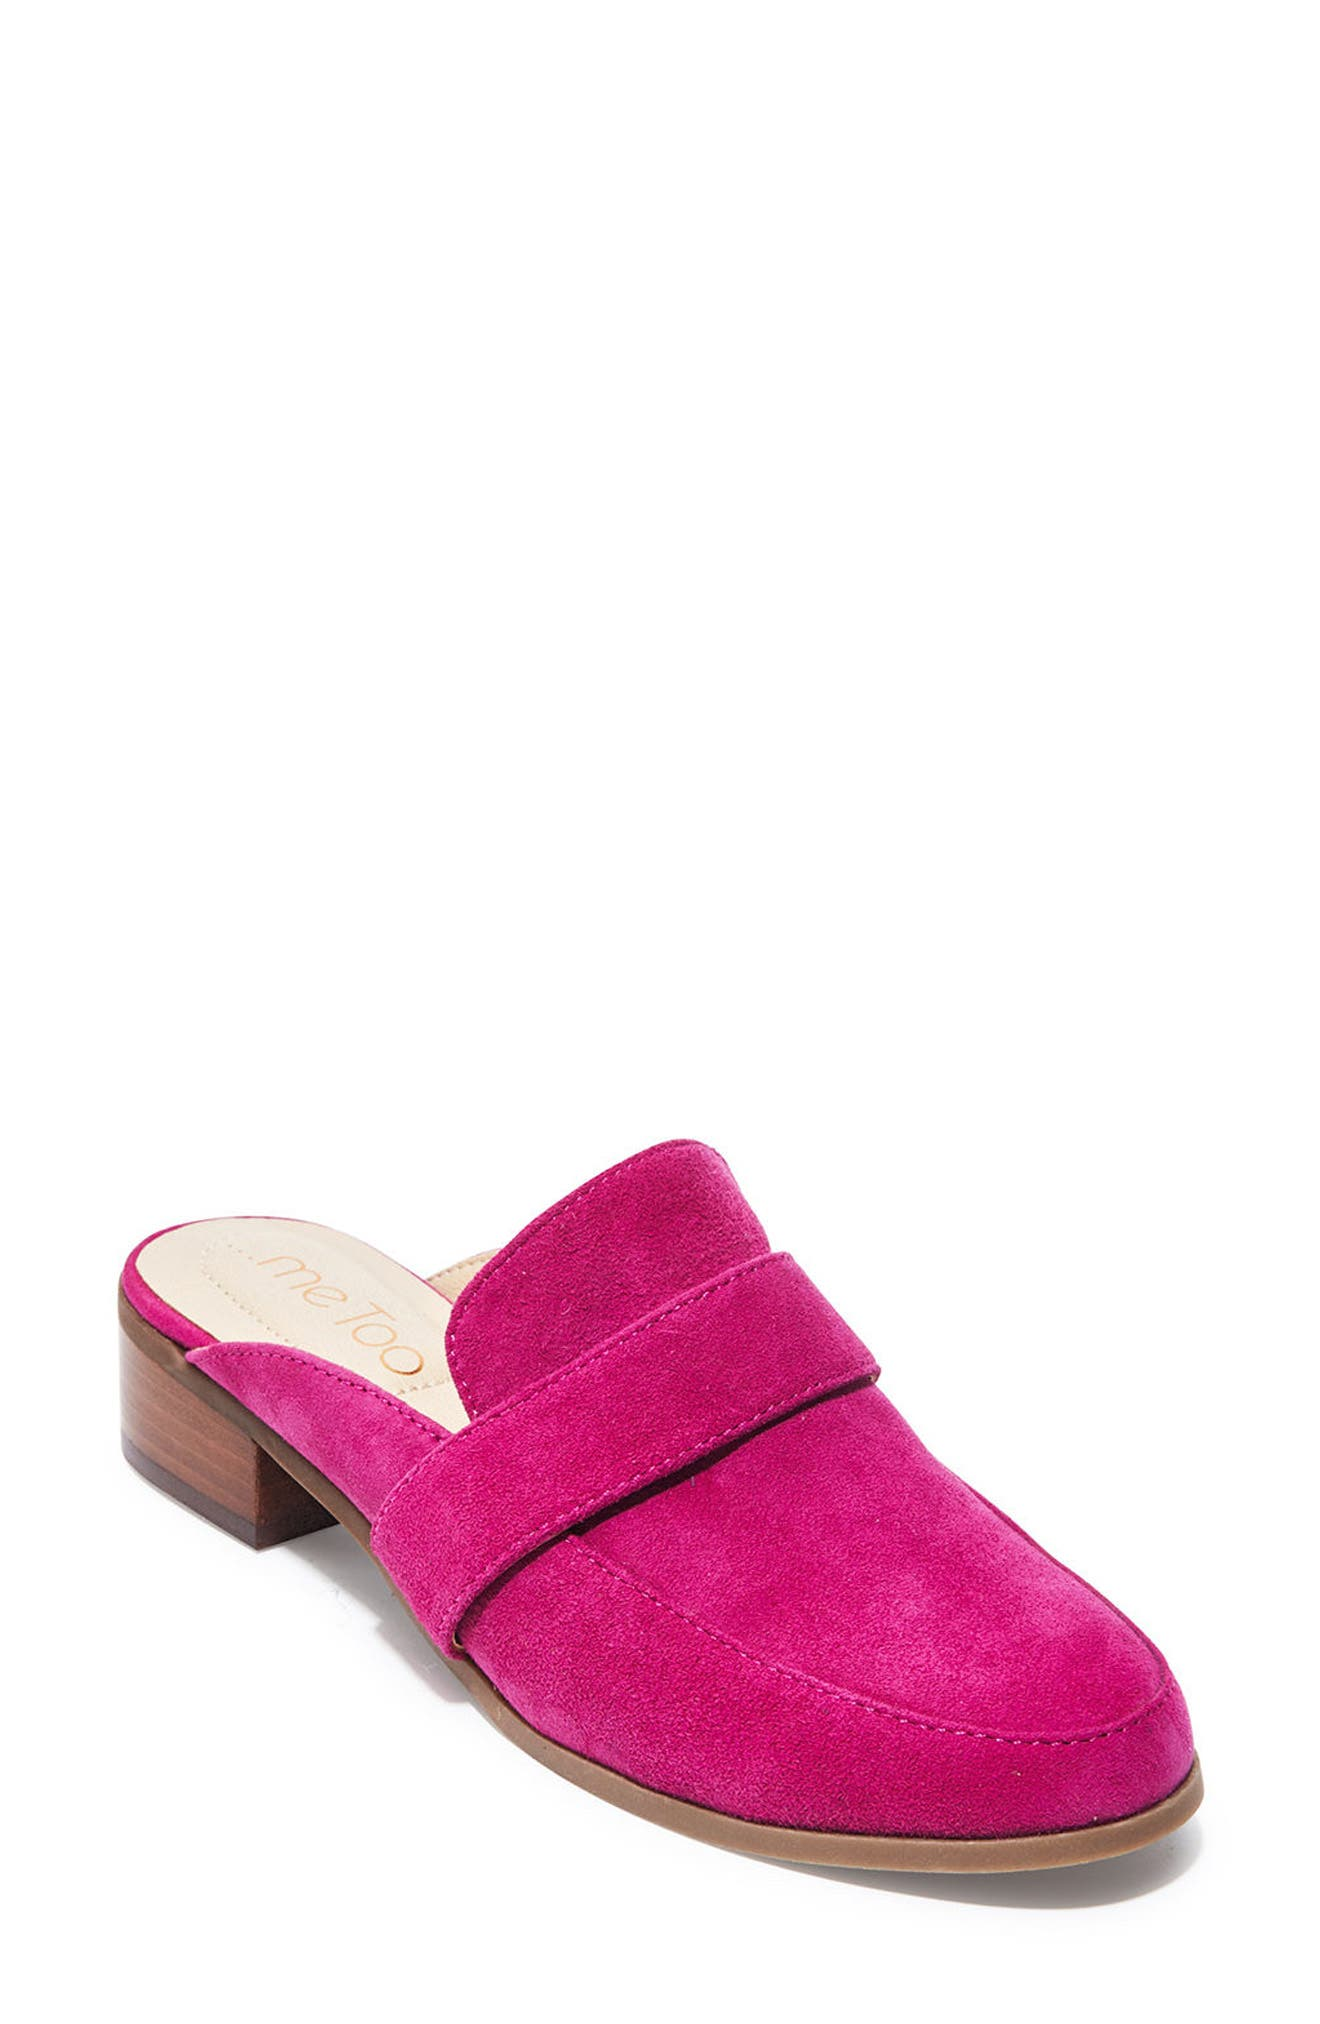 Jada Loafer Mule,                         Main,                         color, Fuchsia Suede